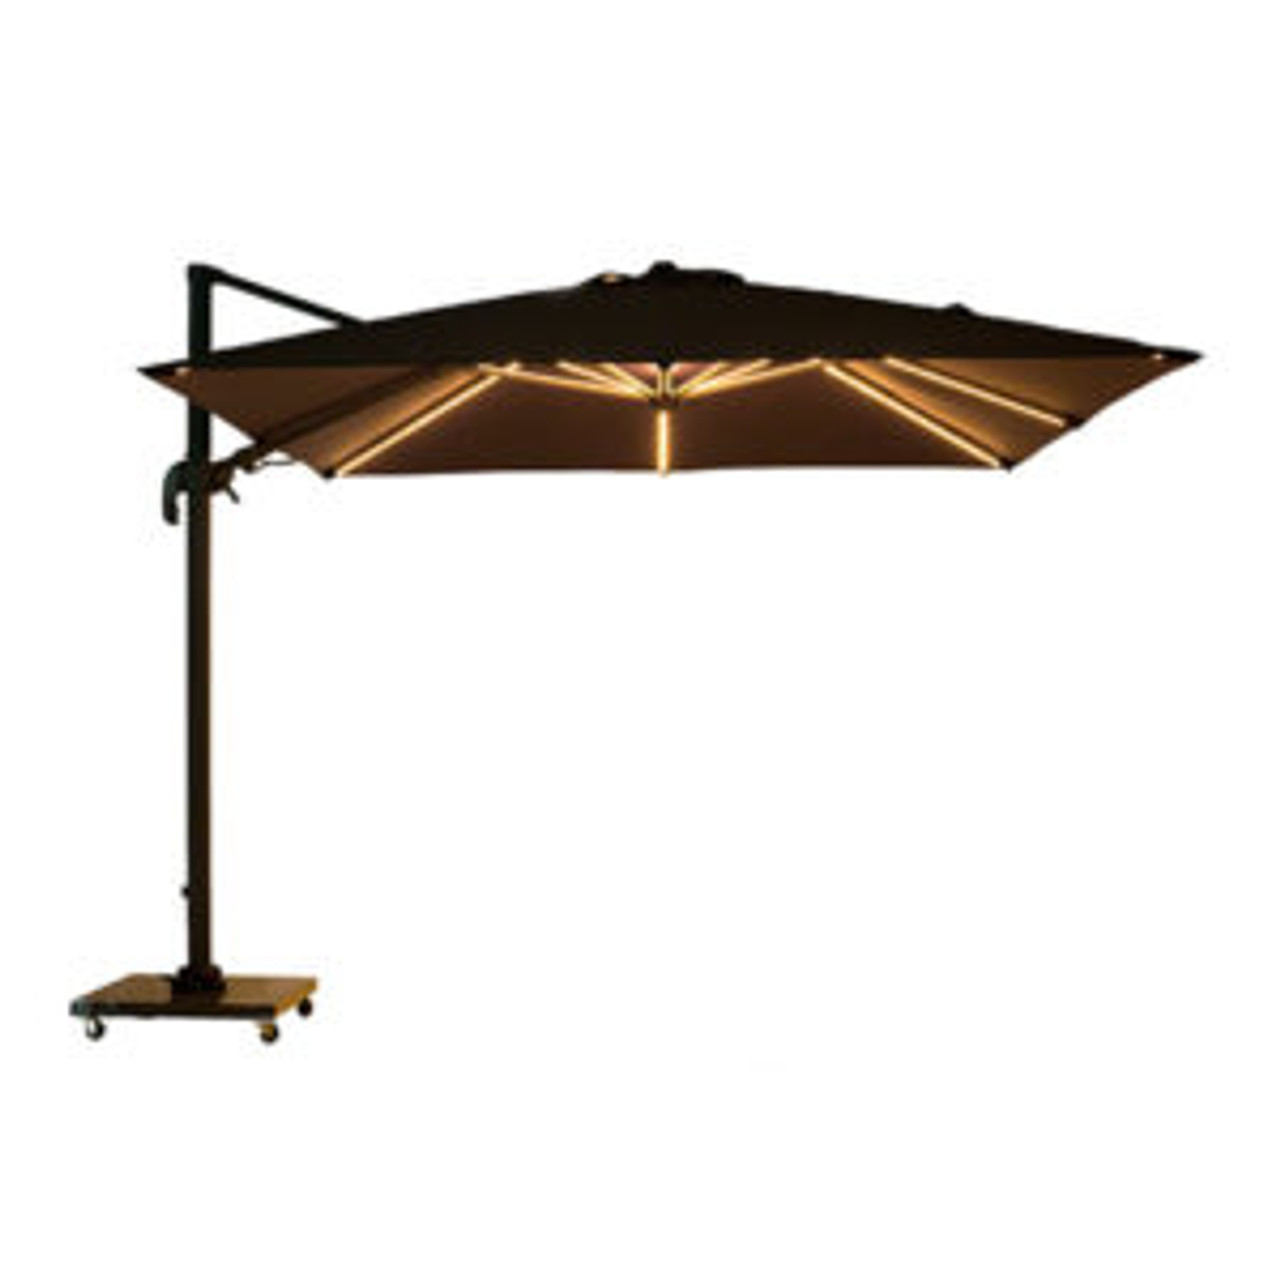 3.0m Square Cantilever Umbrella with LED Lights  and Olefin Shade